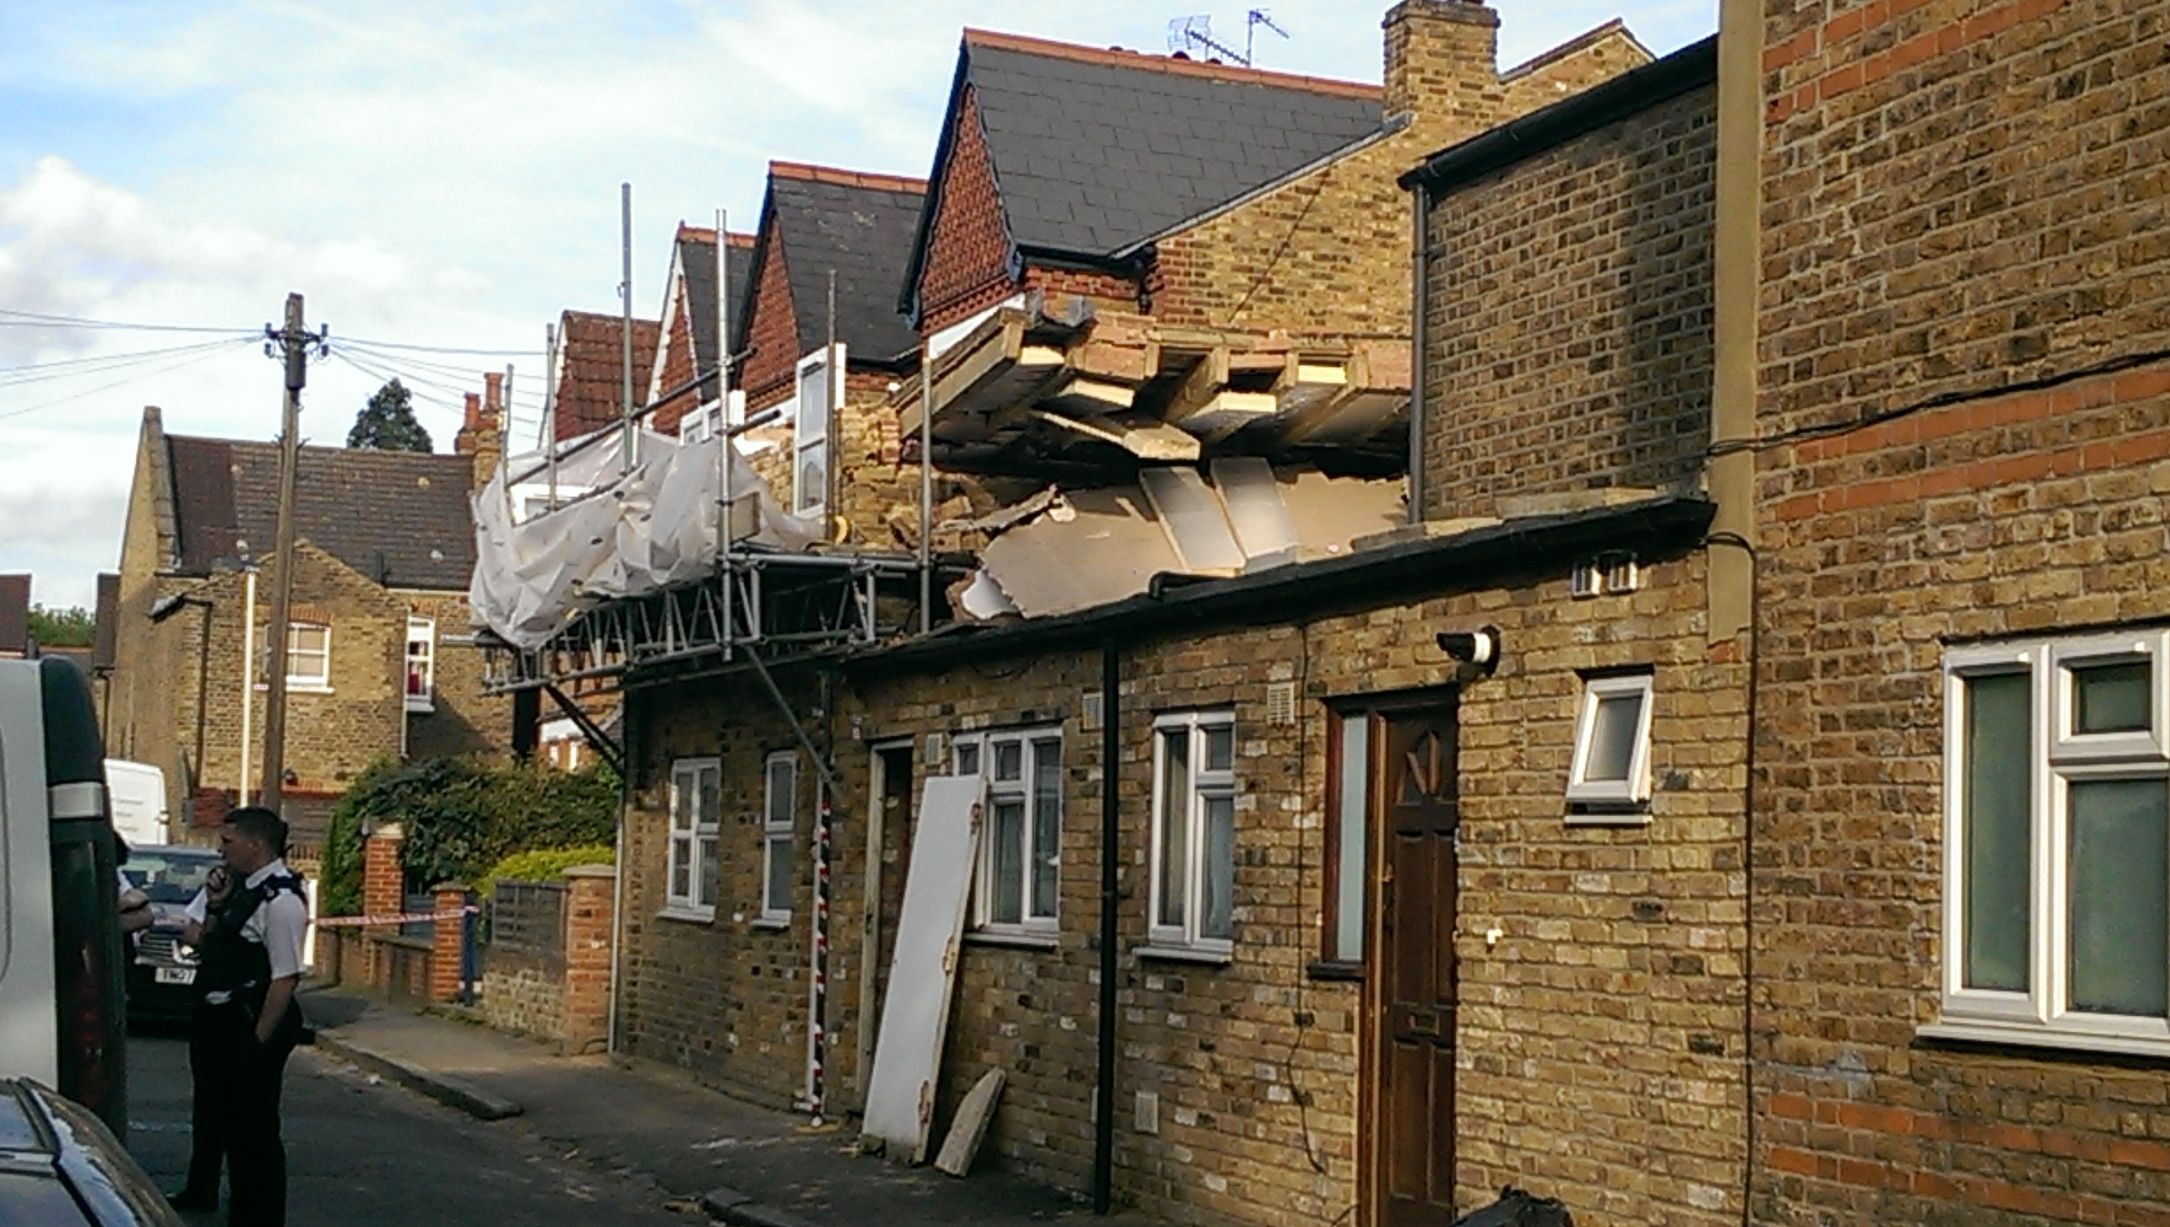 West Ealing roof collapse - Get West London